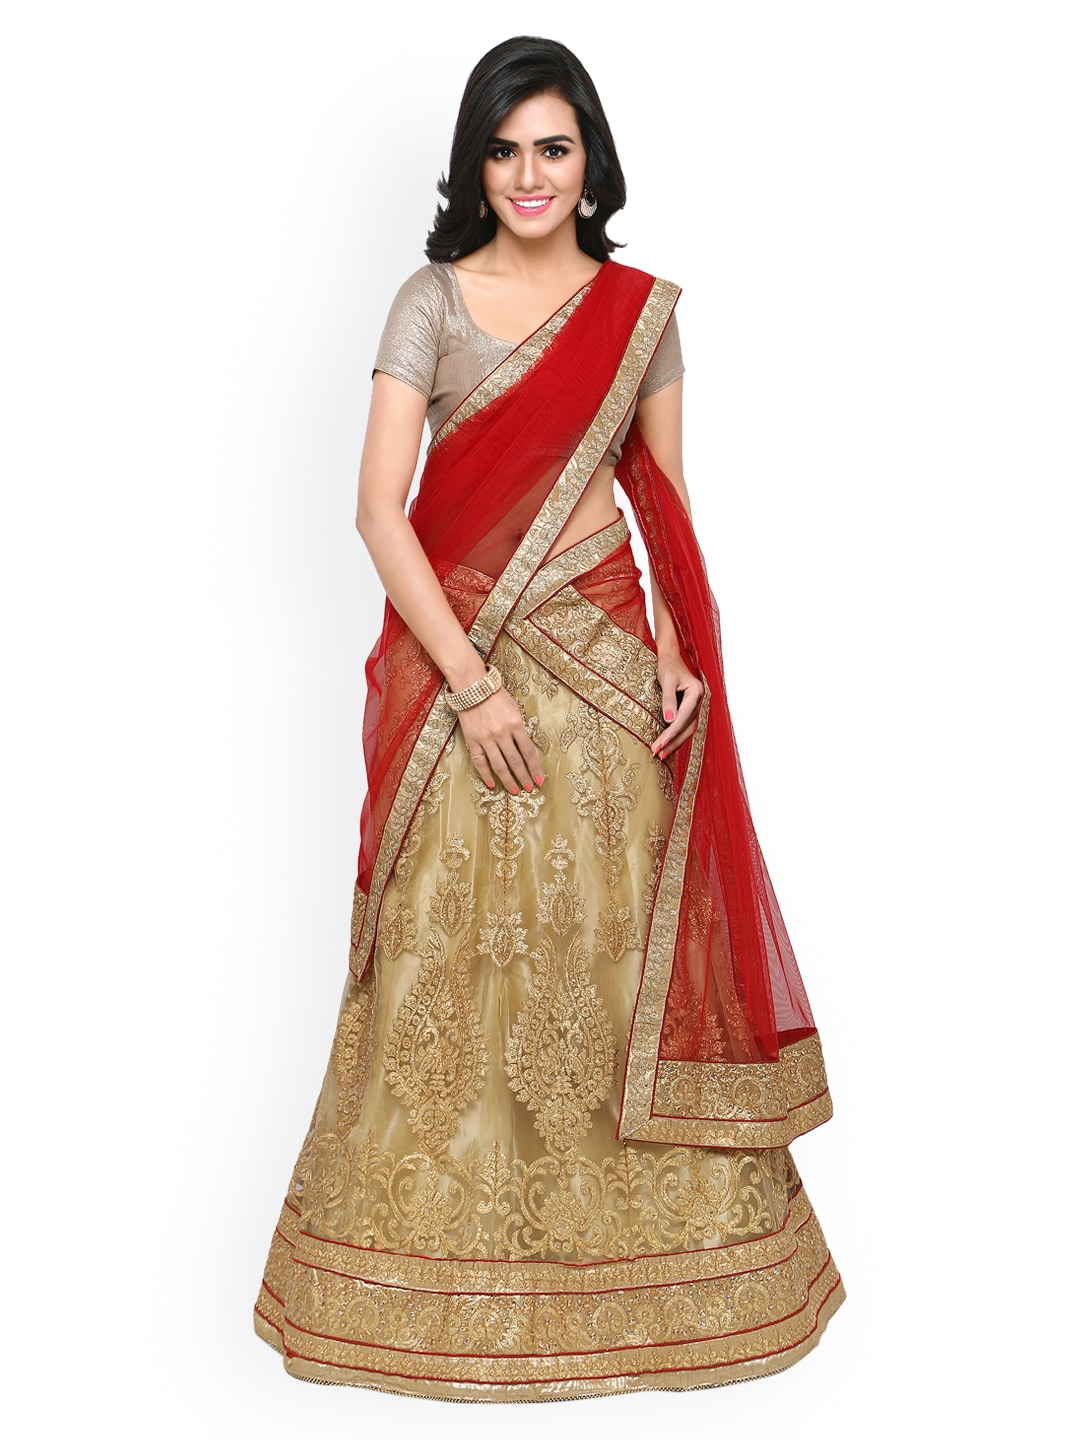 Rajesh Silk Mills Gold-Toned & Beige Embroidered Unstitched Lehenga Choli with Dupatta image